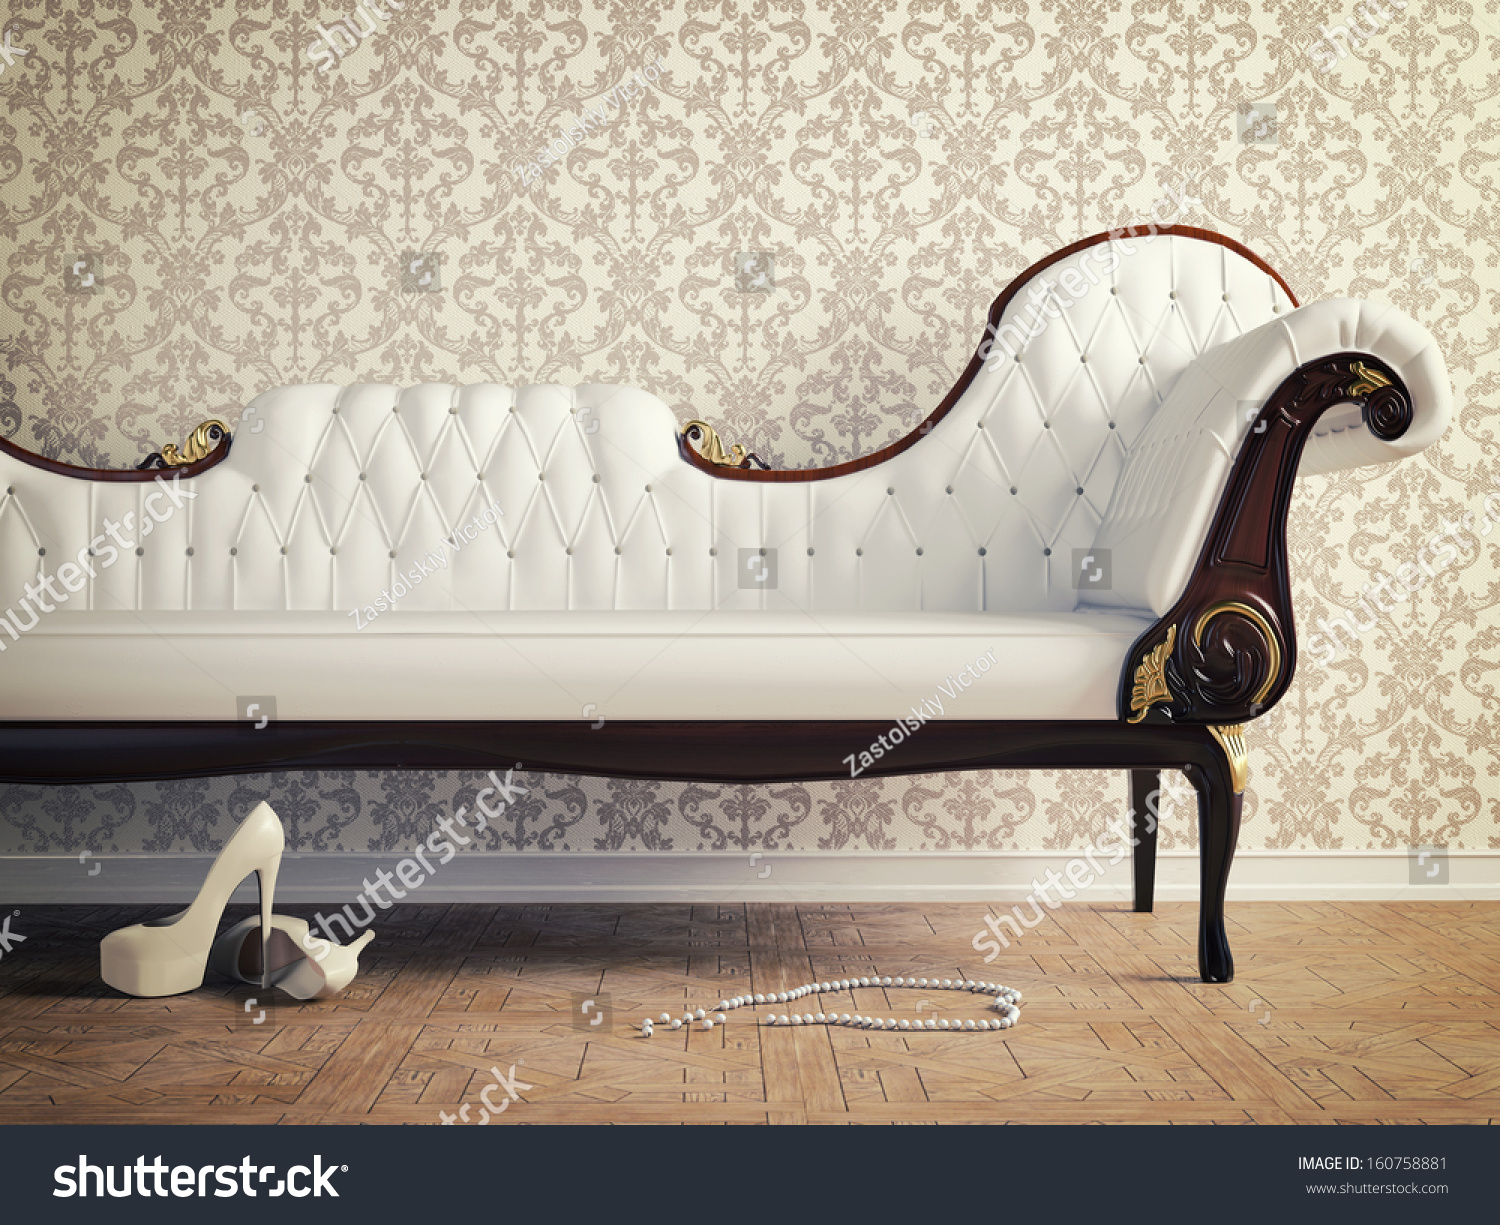 vintage sofa and wallpaper wall retro style illustration 160758881 shutterstock. Black Bedroom Furniture Sets. Home Design Ideas